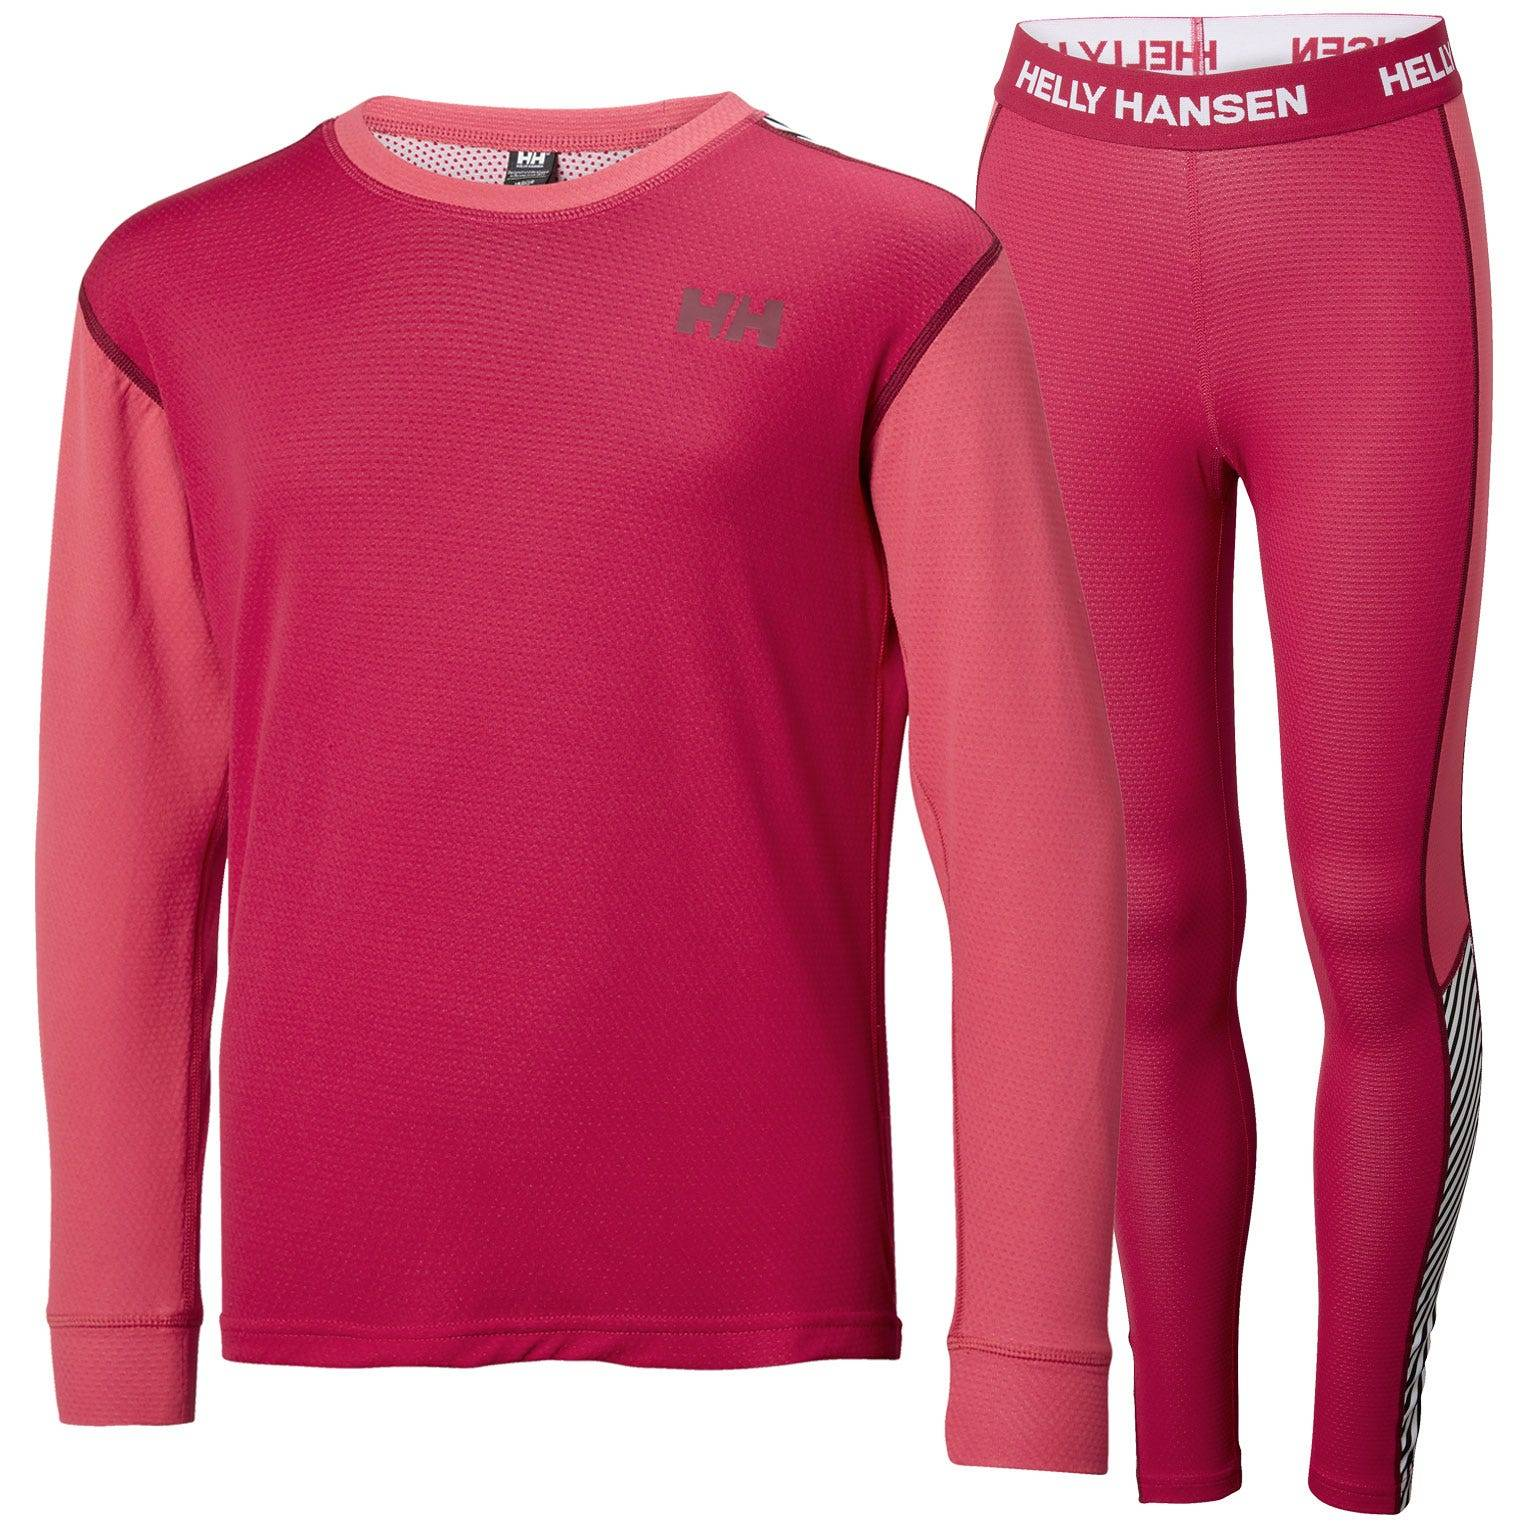 Helly Hansen Junior Lifa Active Set Kids Baselayer Pink 164/14